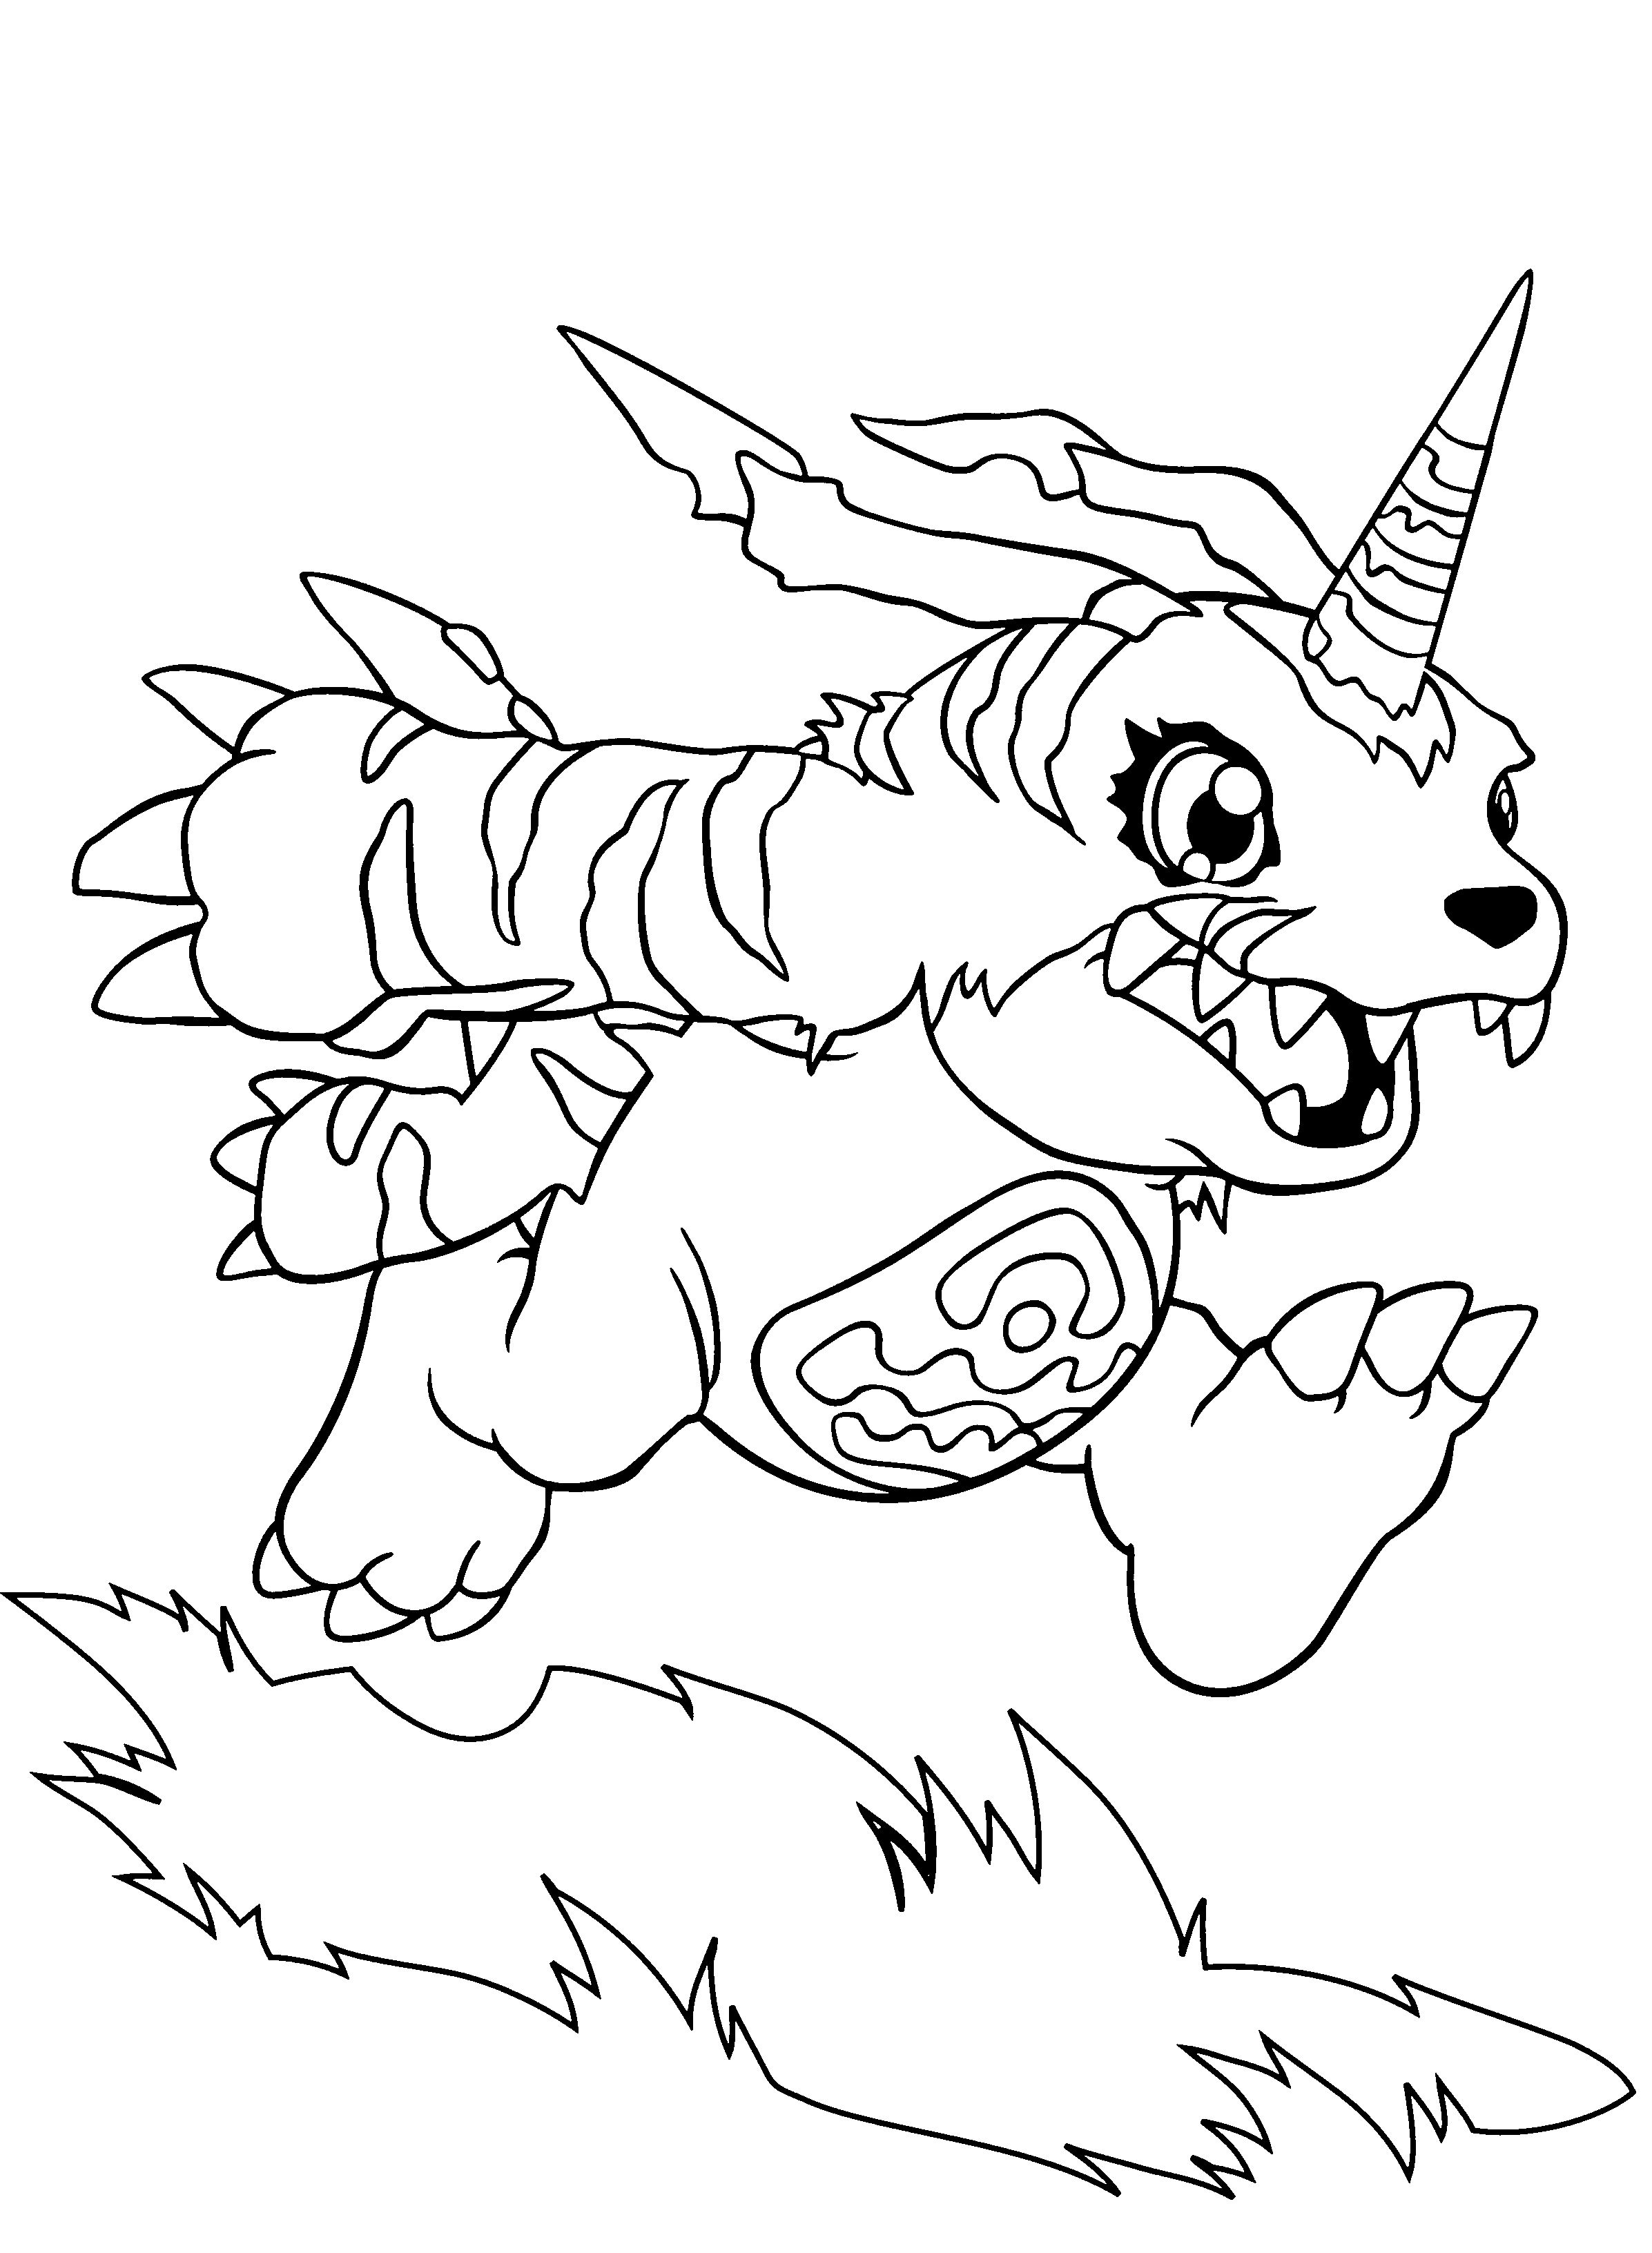 Gabumon Monster Coloring Pages | coloring | Pinterest | Monsters and ...